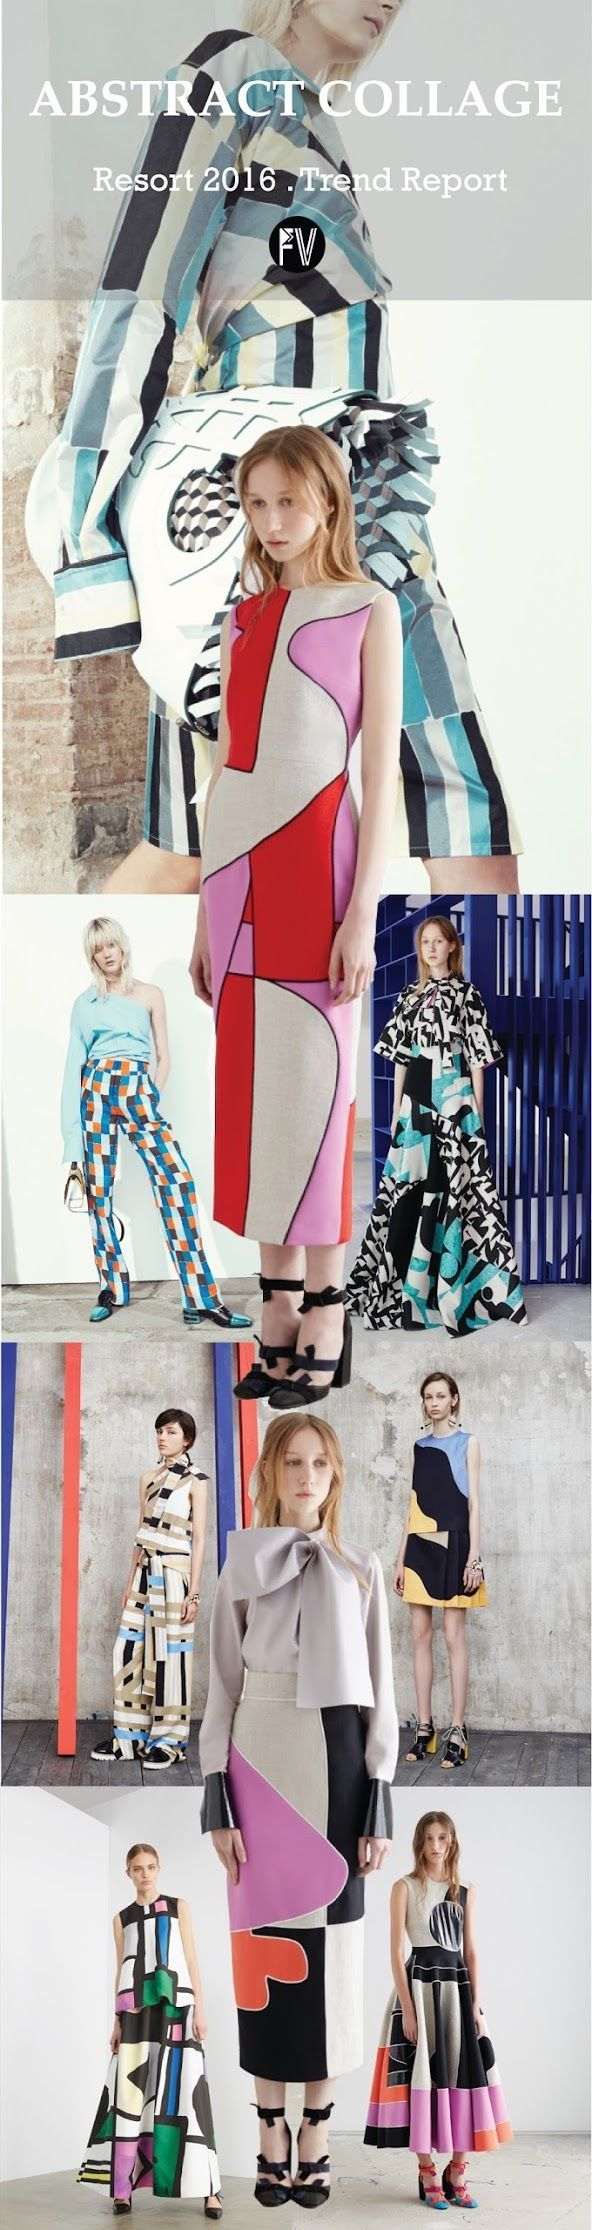 [ TREND REPORT ] ABSTRACT COLLAGE - RESORT 2016 (FASHION ...